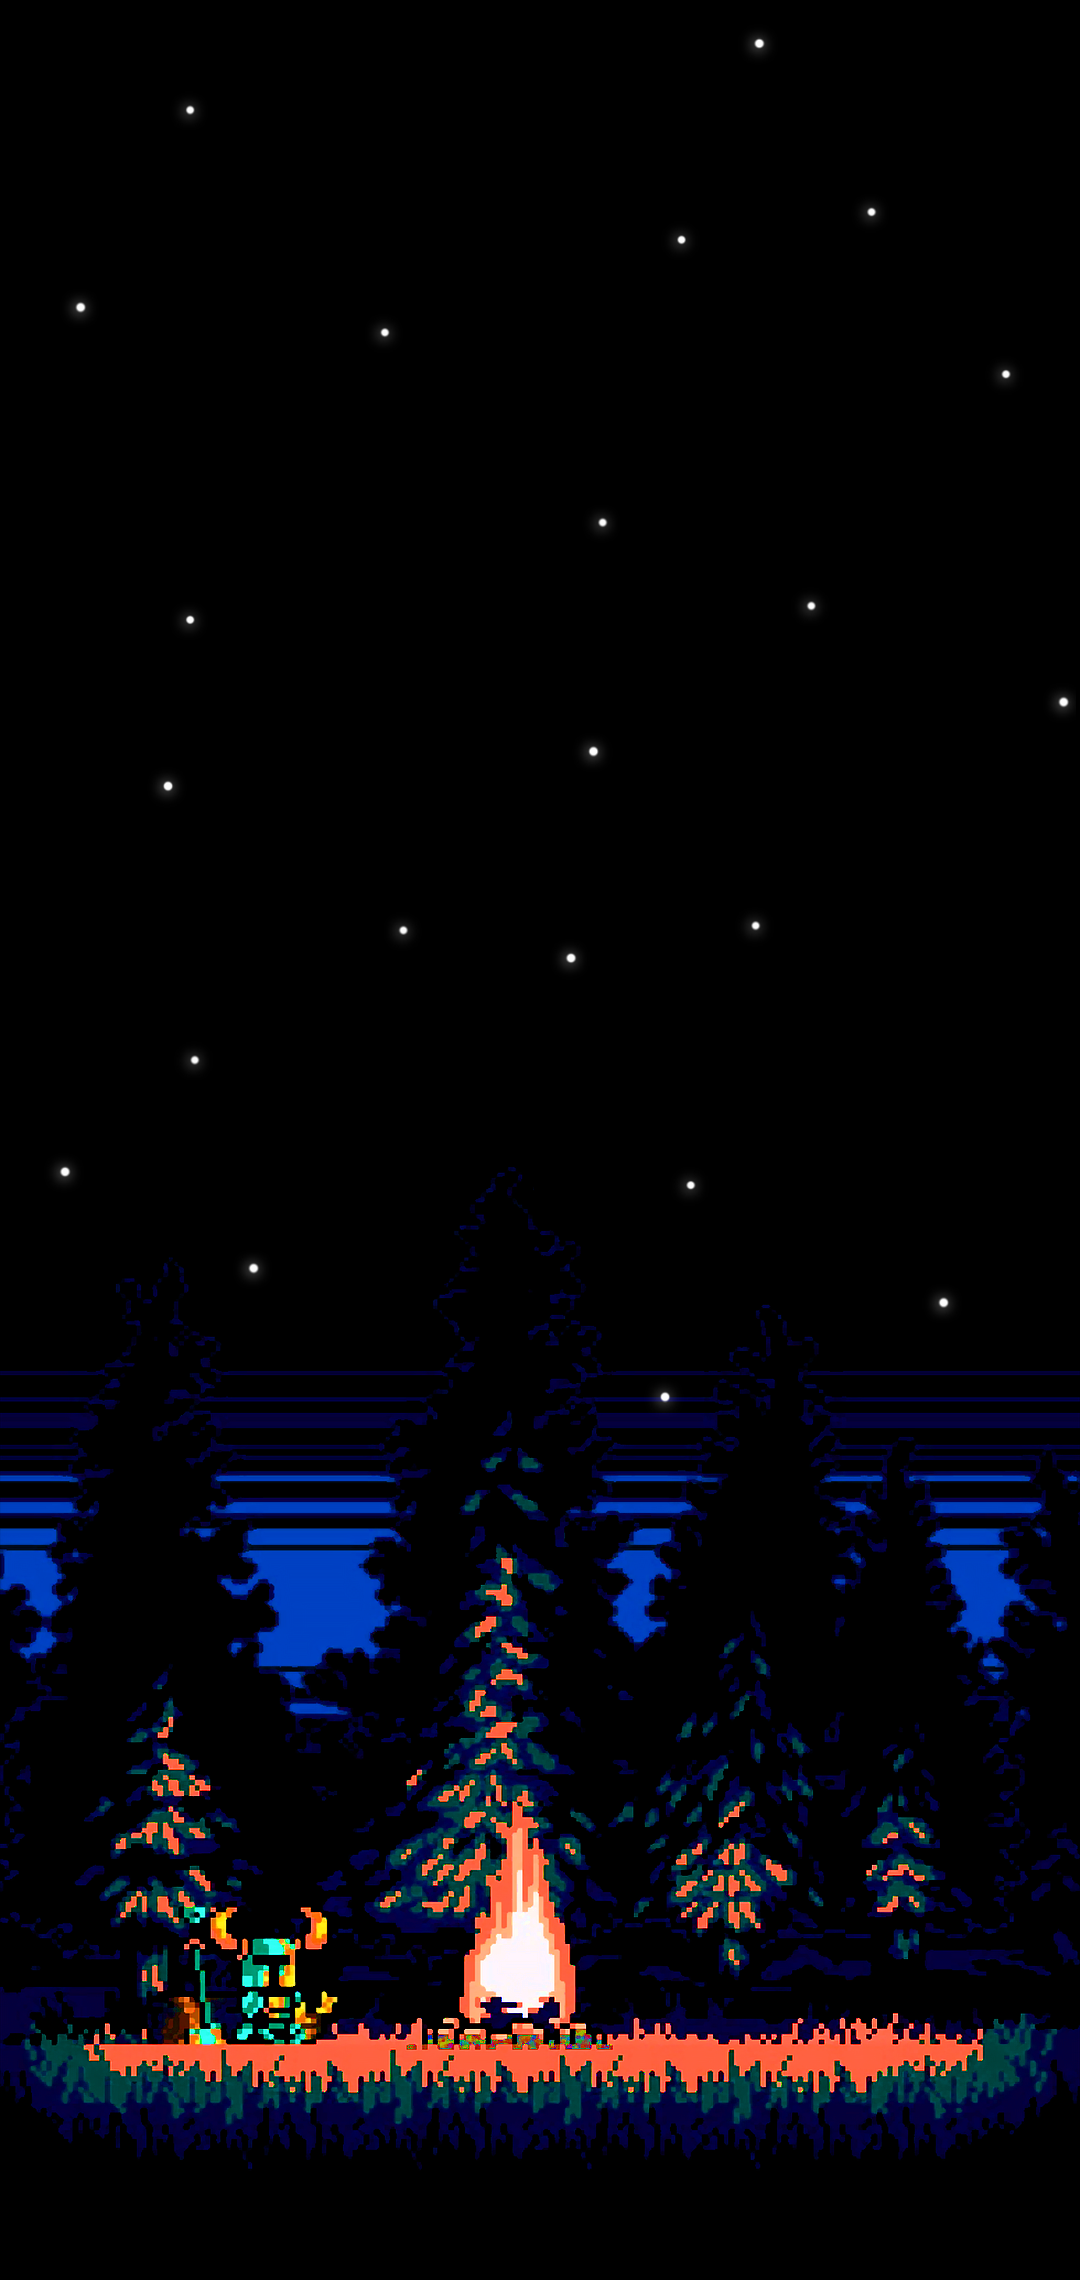 PIXEL ART AMOLED NIGHT BLACK WALLPAPER PHONE